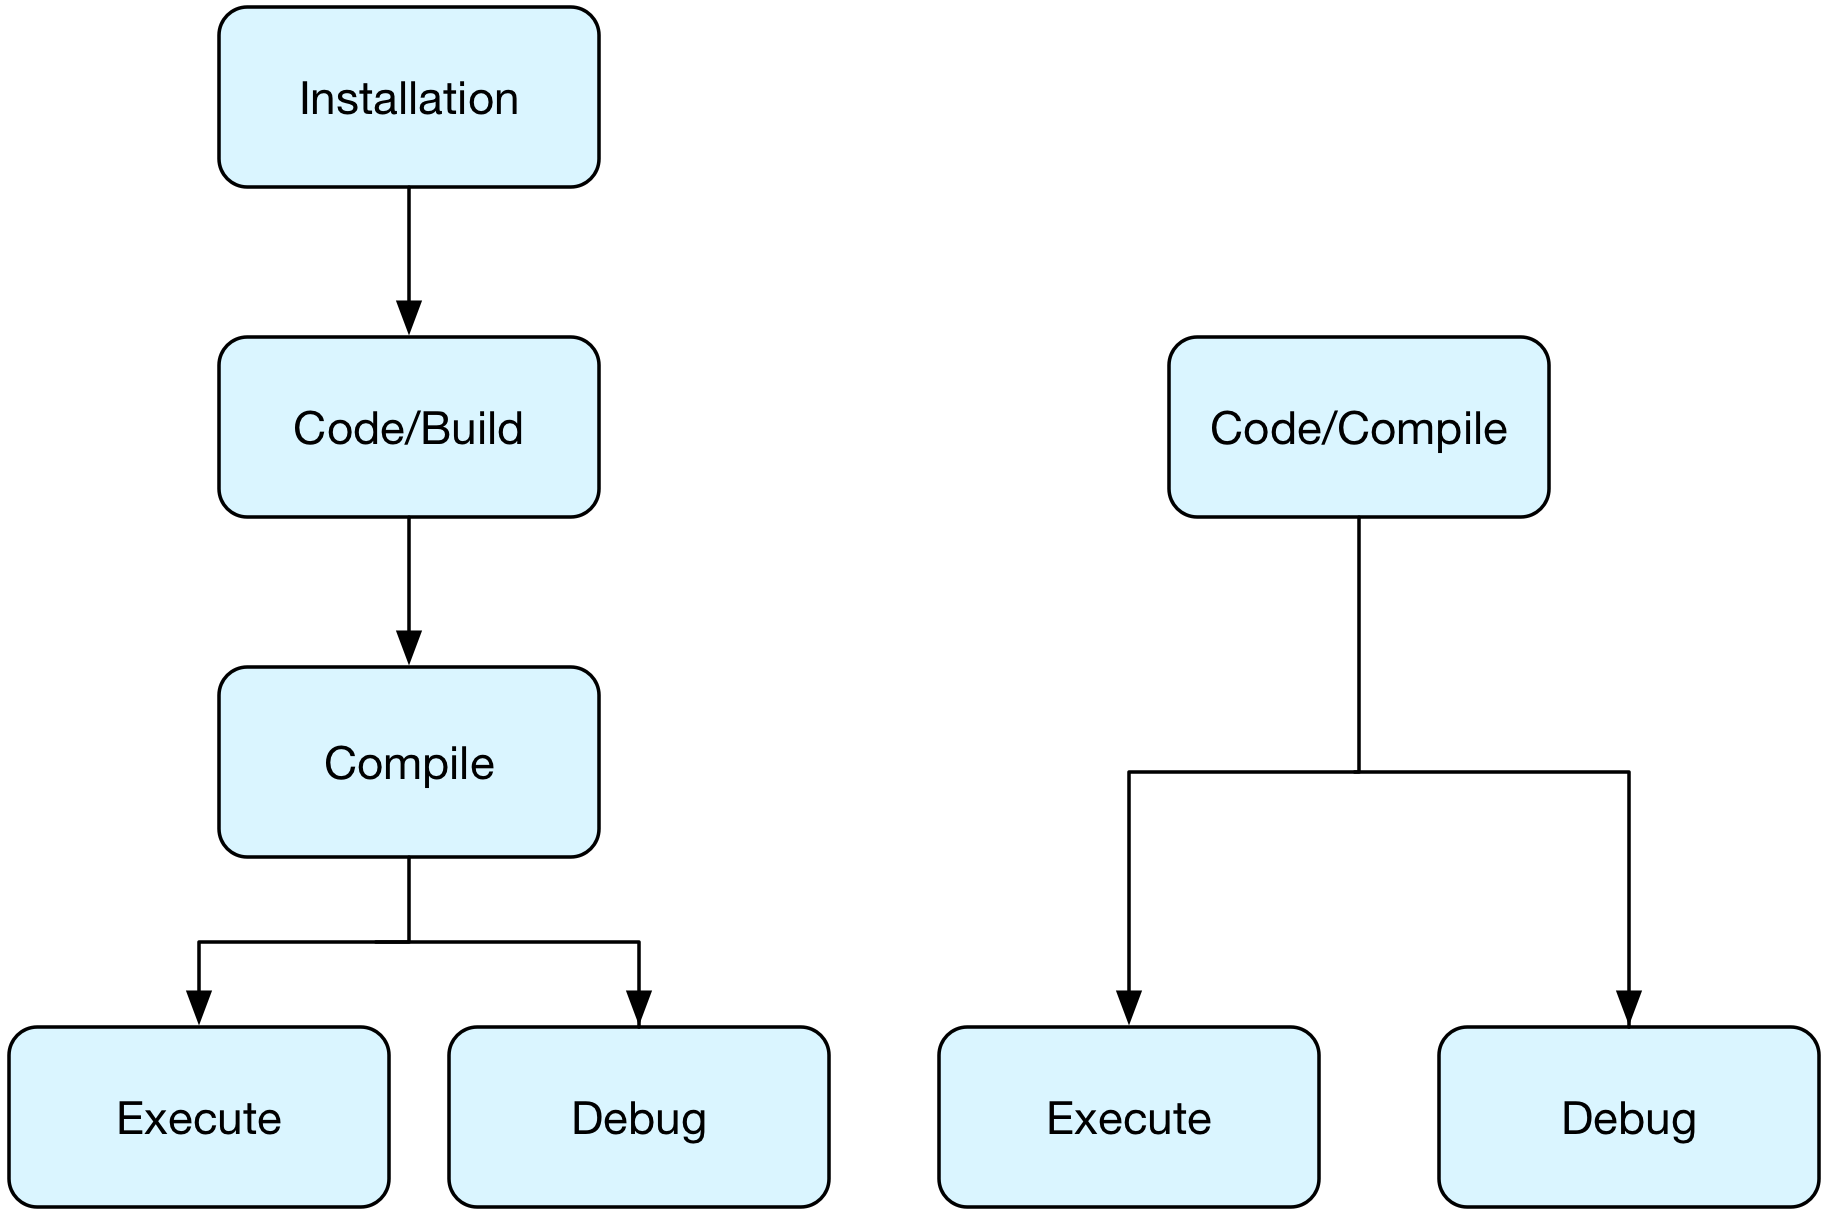 ../../_images/java-to-salesforce-build-process.png